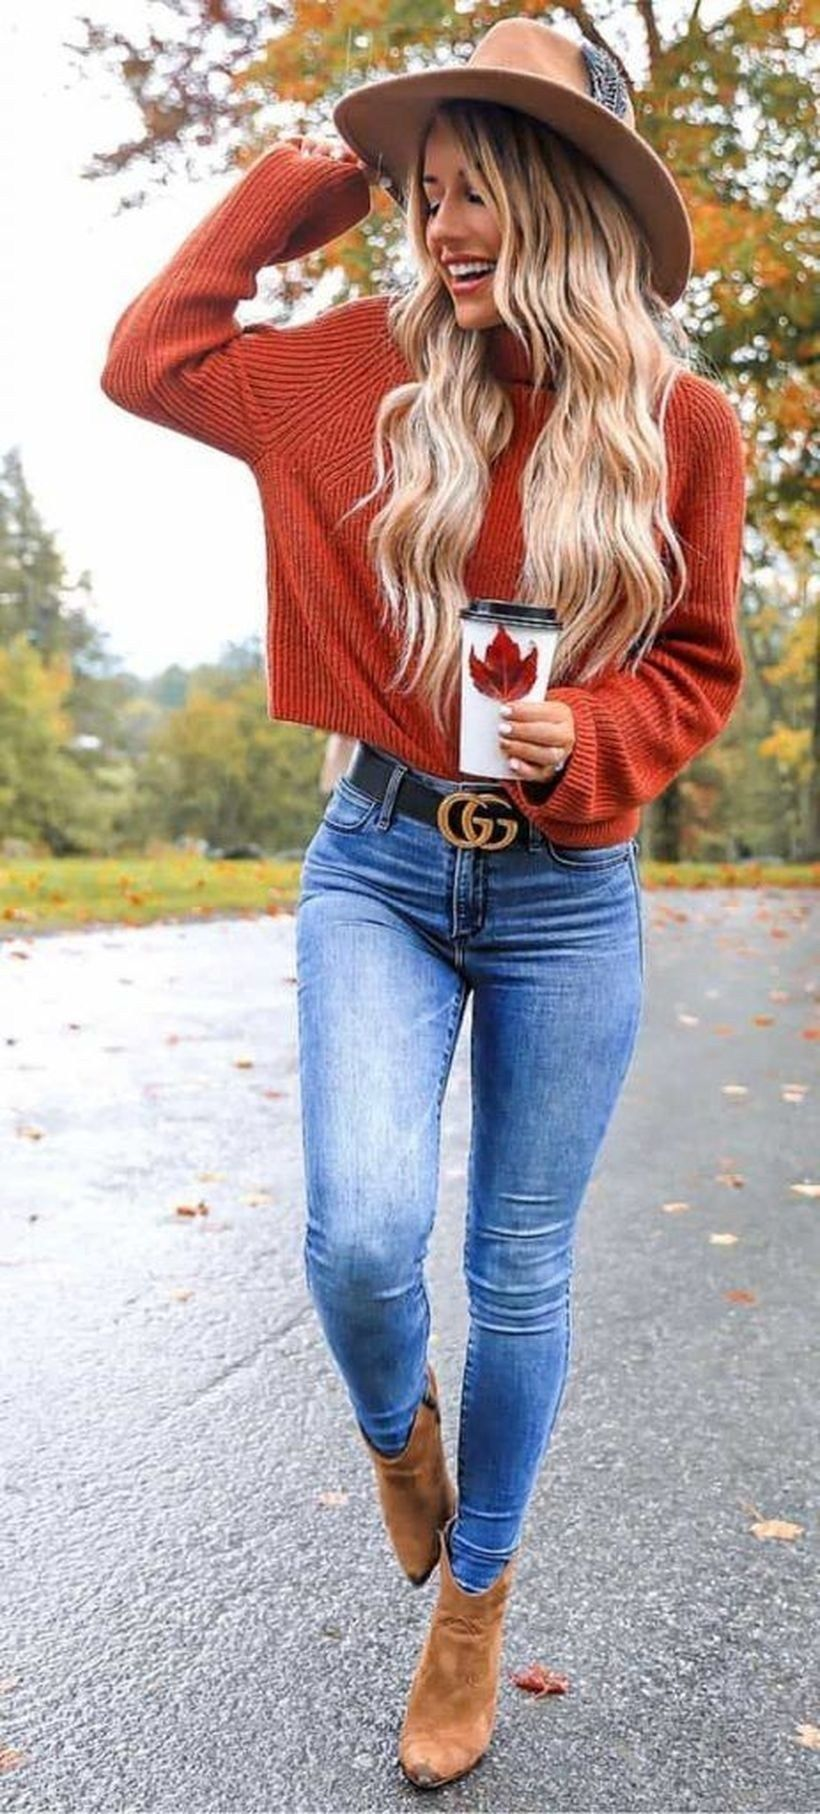 42 Cute Fall Outfit Ideas Trending Right Now